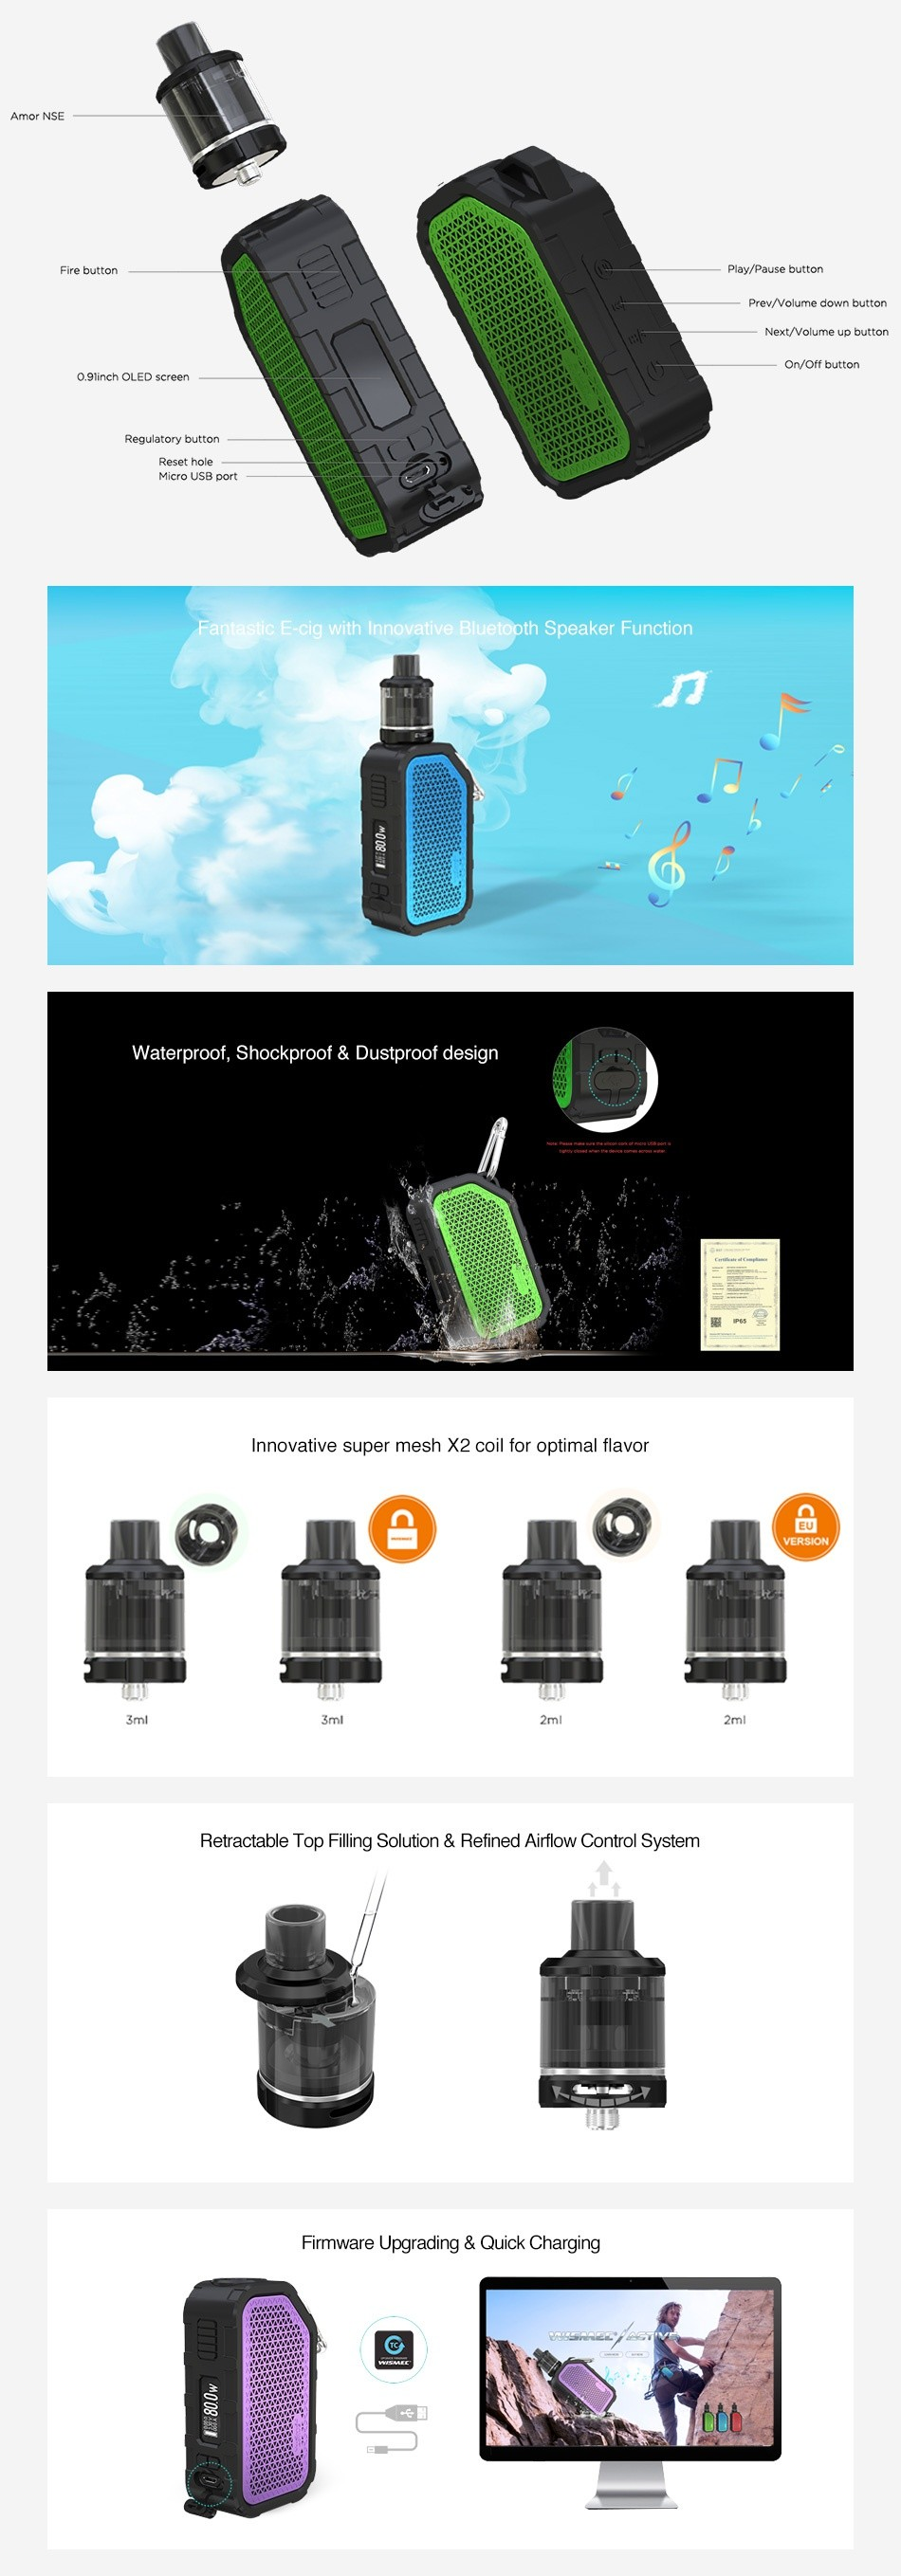 WISMEC Active Bluetooth Music TC Kit with Amor NSE 2100mAh Amor NSE Fire Hutton Play  pouch button ogRinch OLED s rcC  Regulatory button C E cig with Innovative Bluetooth Speaker Function Waterproof  Shockproof Dustproof design Innovative super mesh X2 coil for optimal flavor Retractable Top filling Solution Refined Airflow Control System Firmware Upgrading Quick Charging